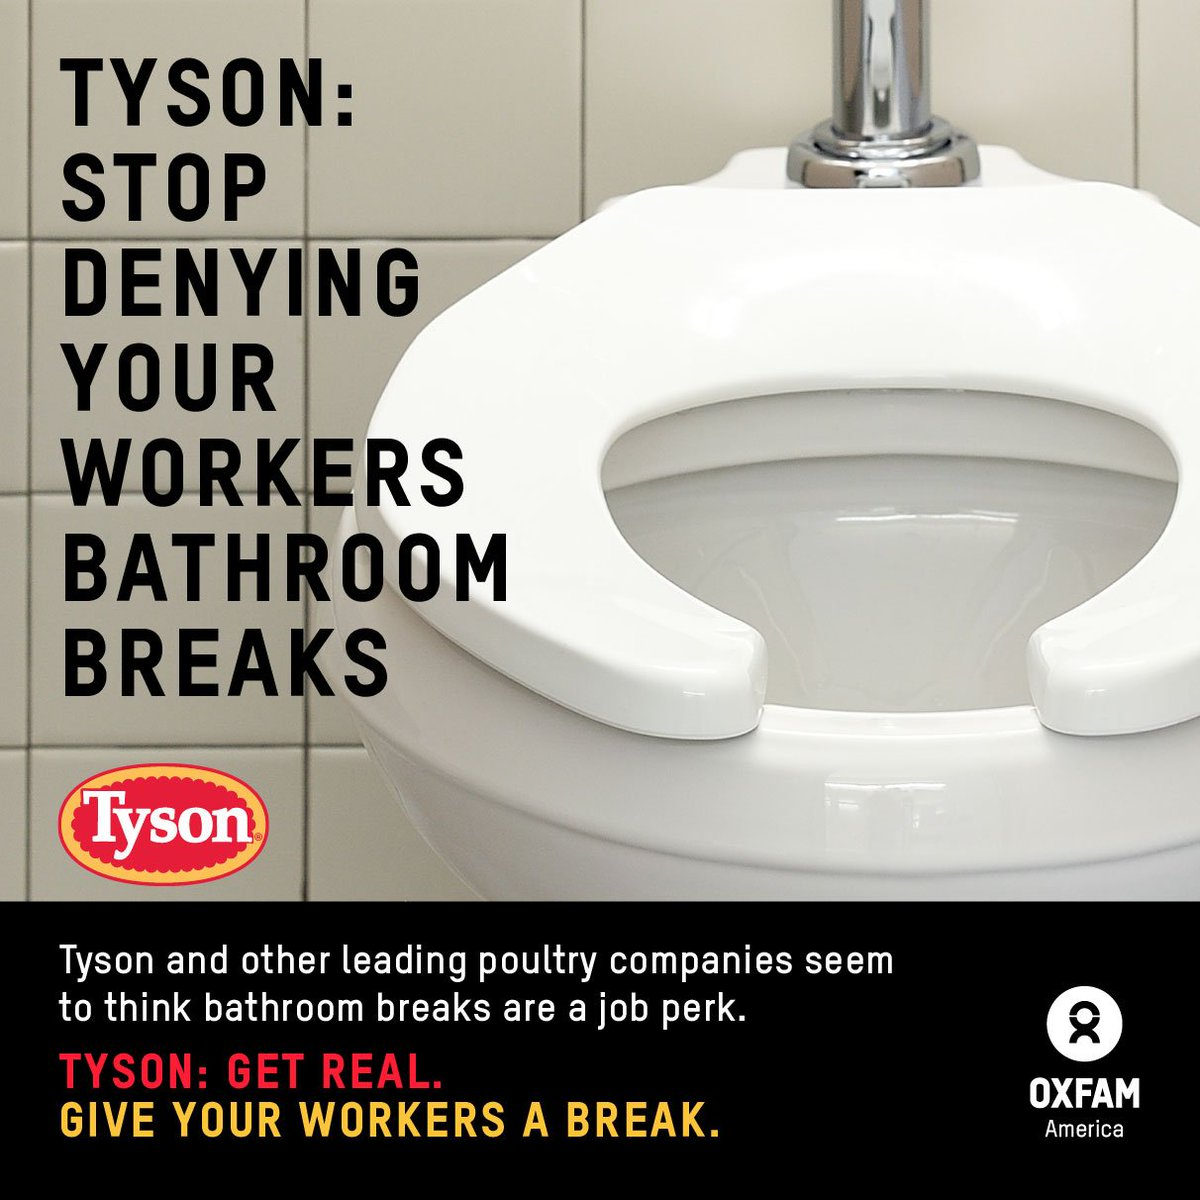 .@TysonFoods: let your workers take bathroom breaks when they need to! #GiveThemABreak https://t.co/UmStGVQA0S